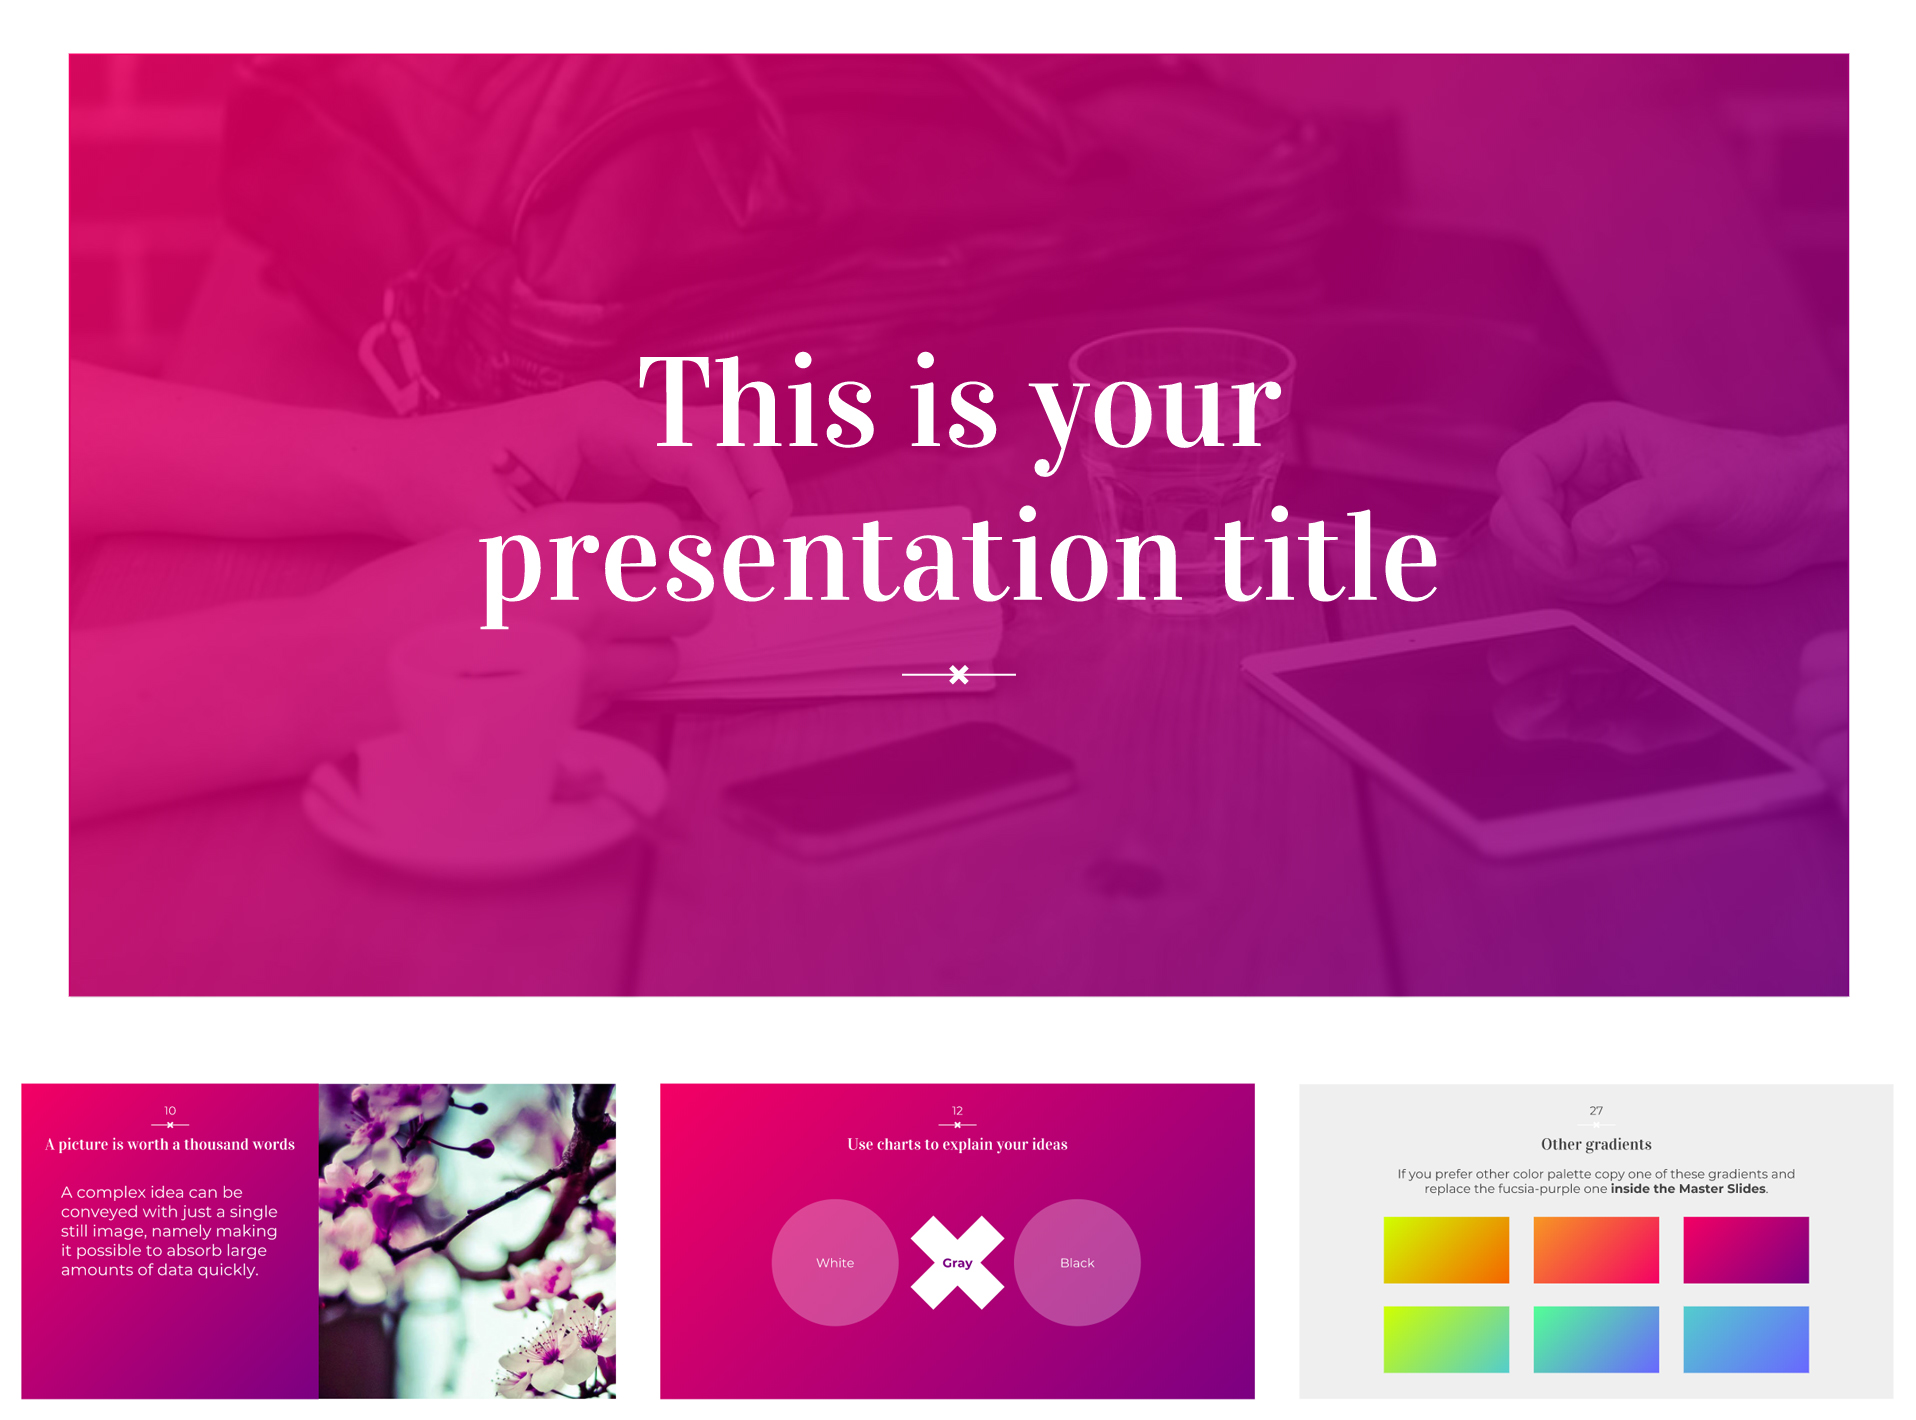 Free Google Slides Templates with 6 Color Gradients - The Internet Tips